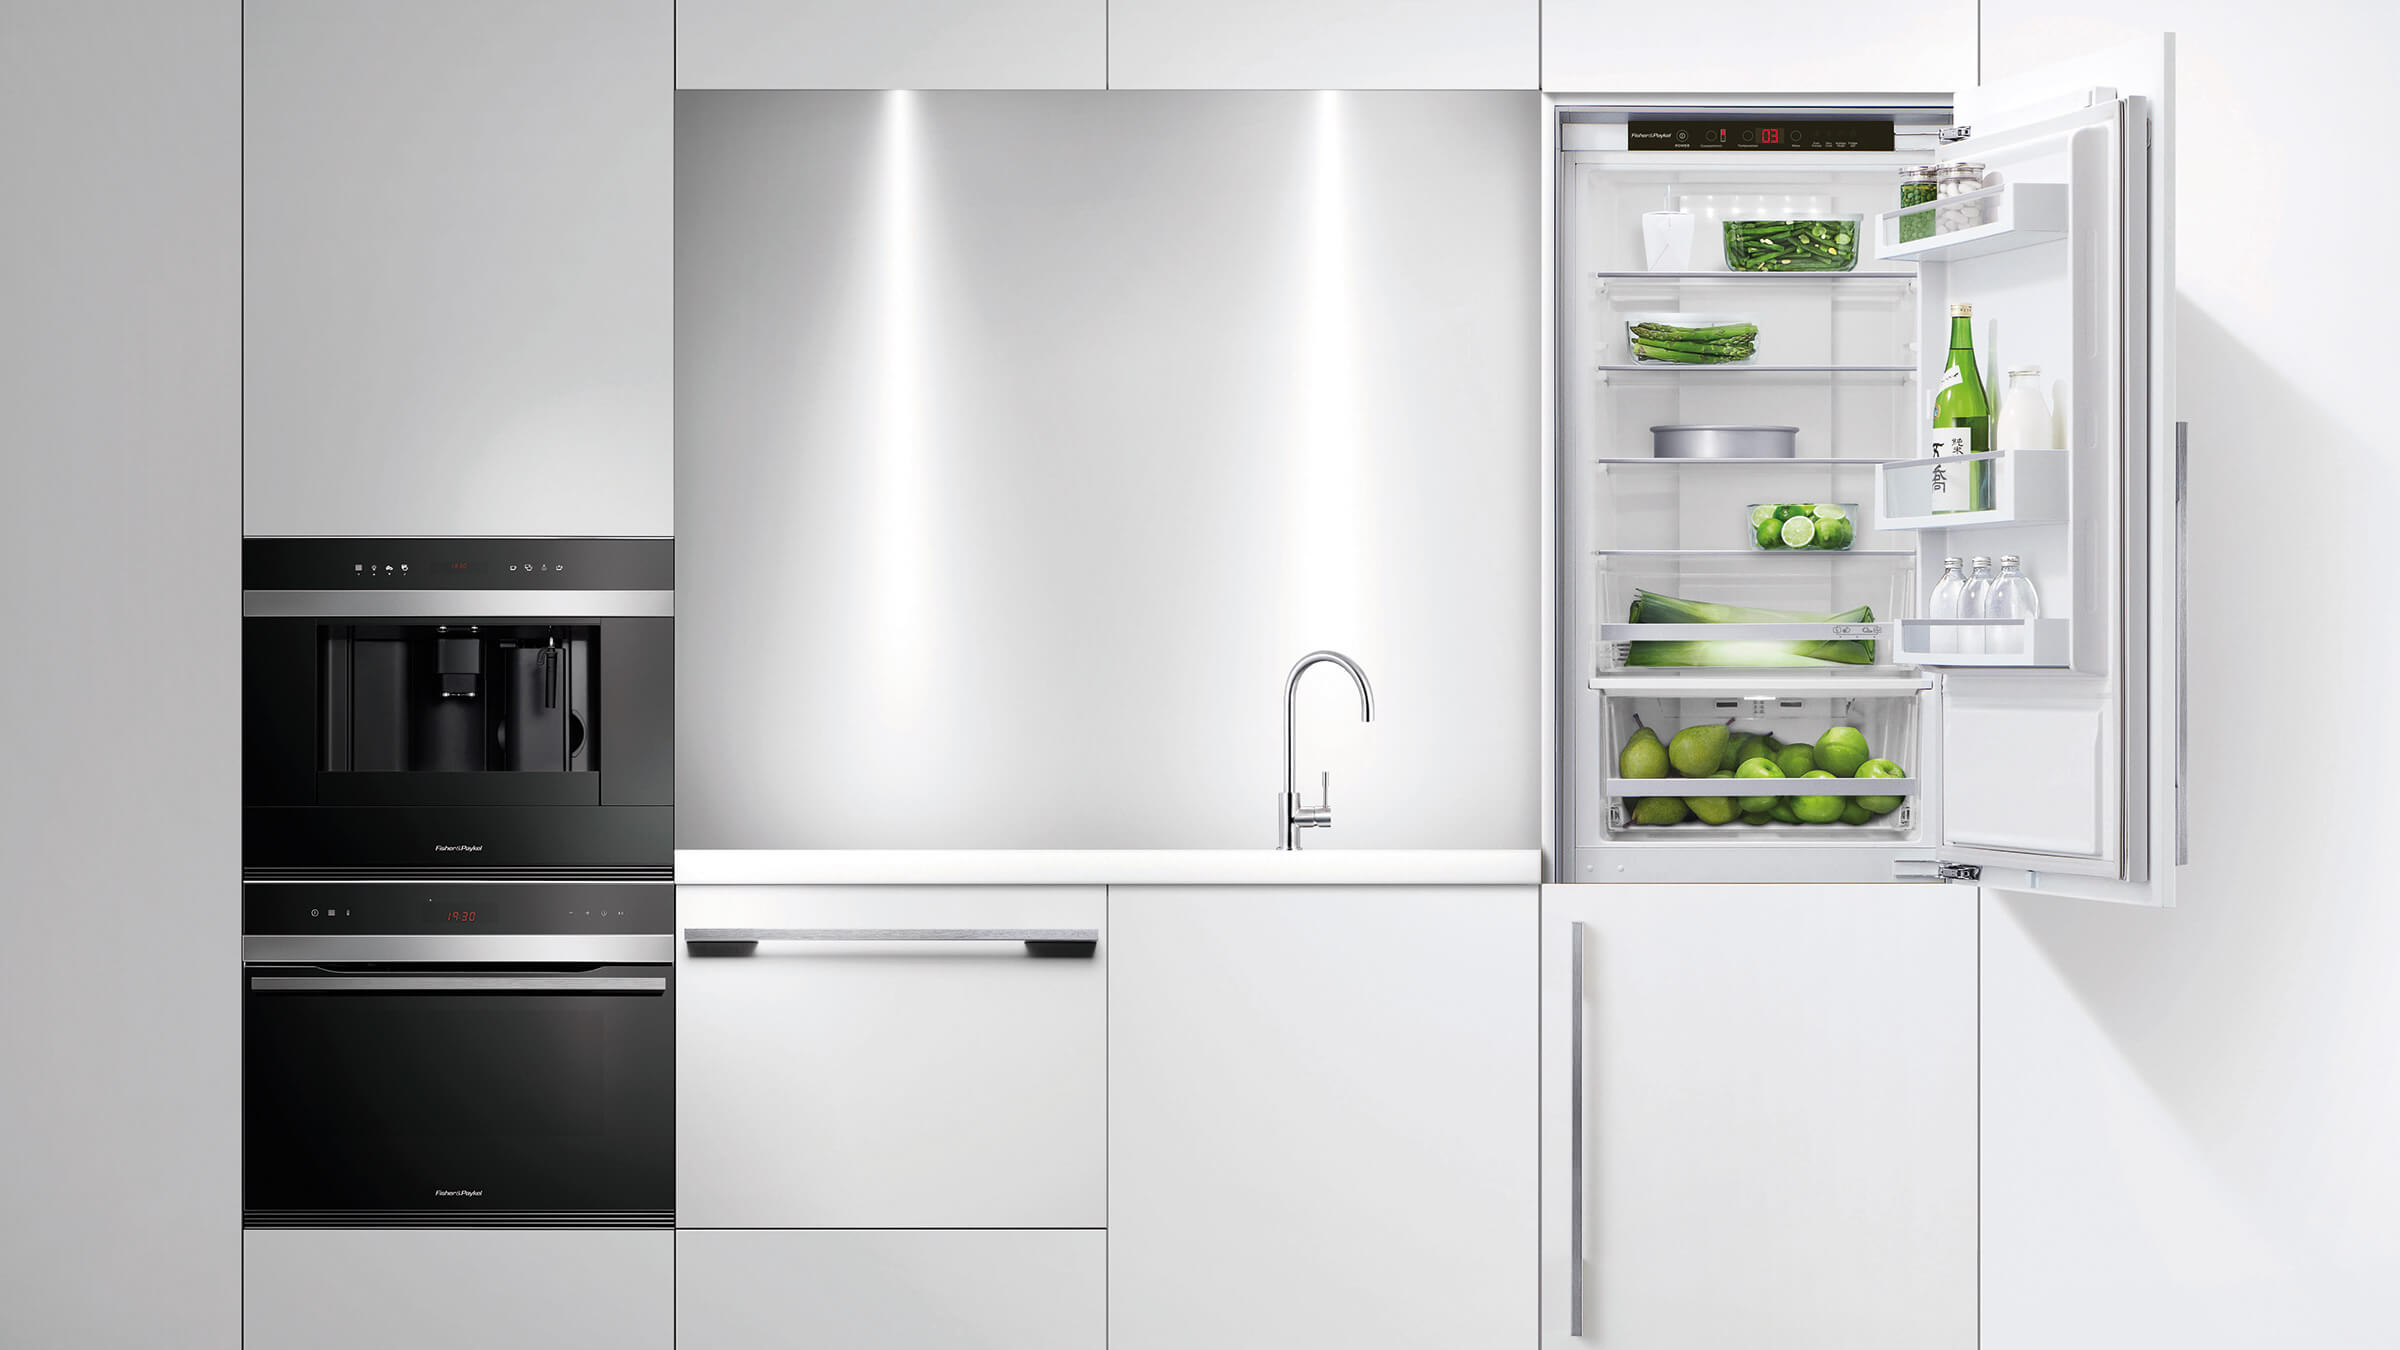 Kitchen cabinets 50cm depth - Design Flexibility